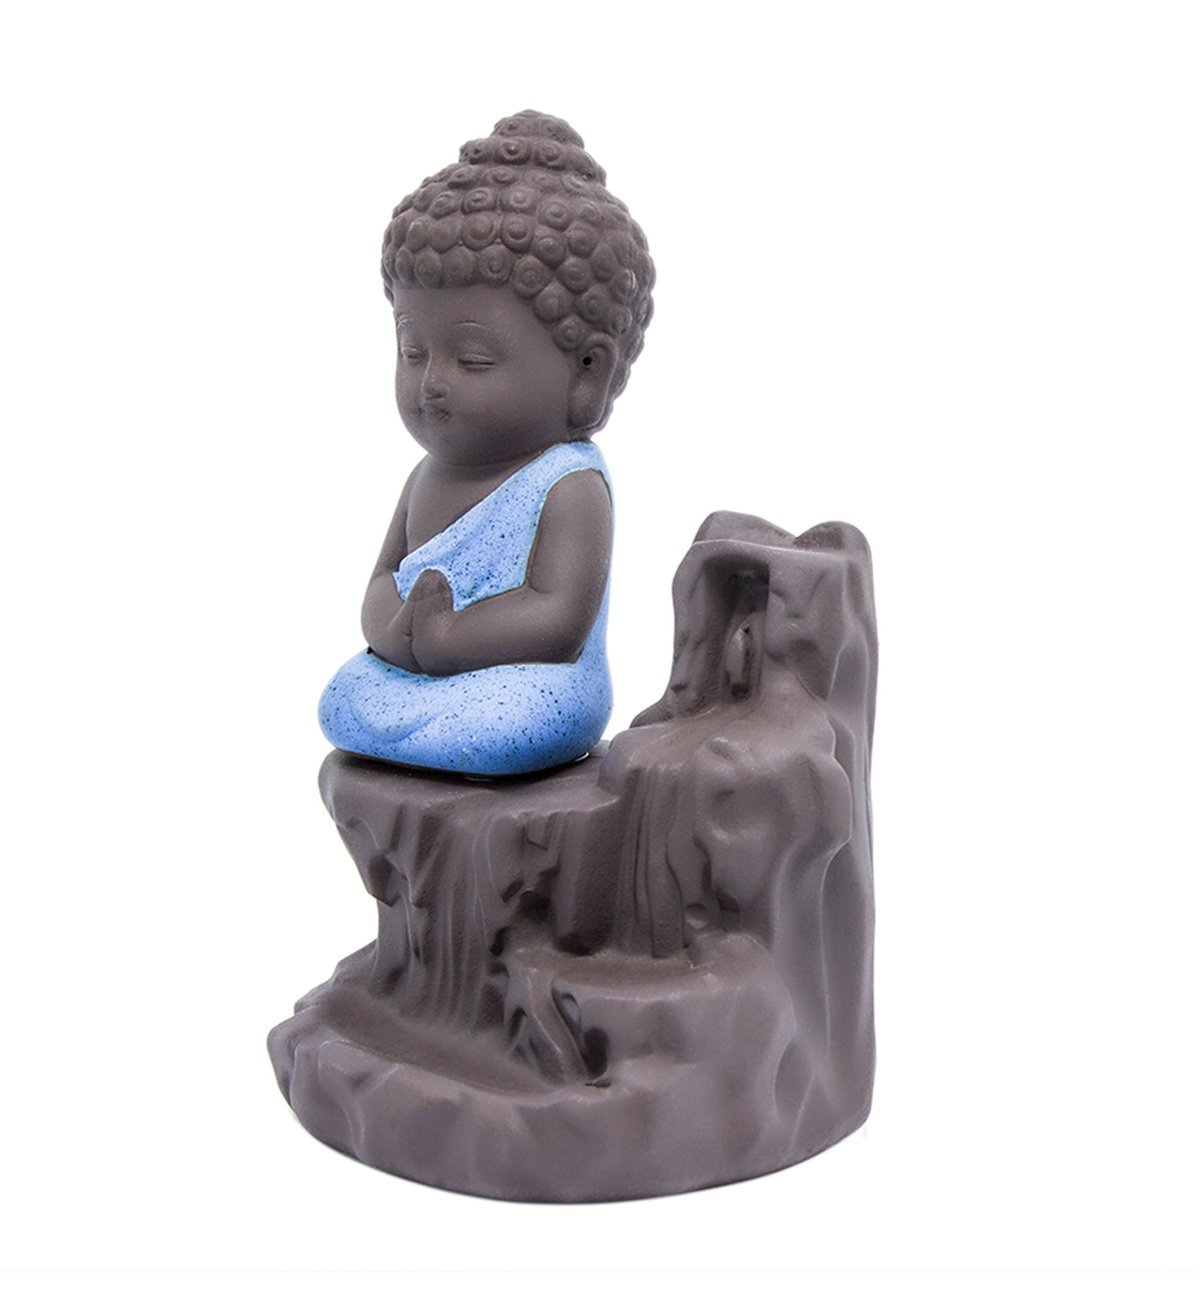 IN-001Blue The Little Monk Waterfall Backflow Homemade Buddha Incense Burner Tower Cones Sticks Holder Ash Catcher